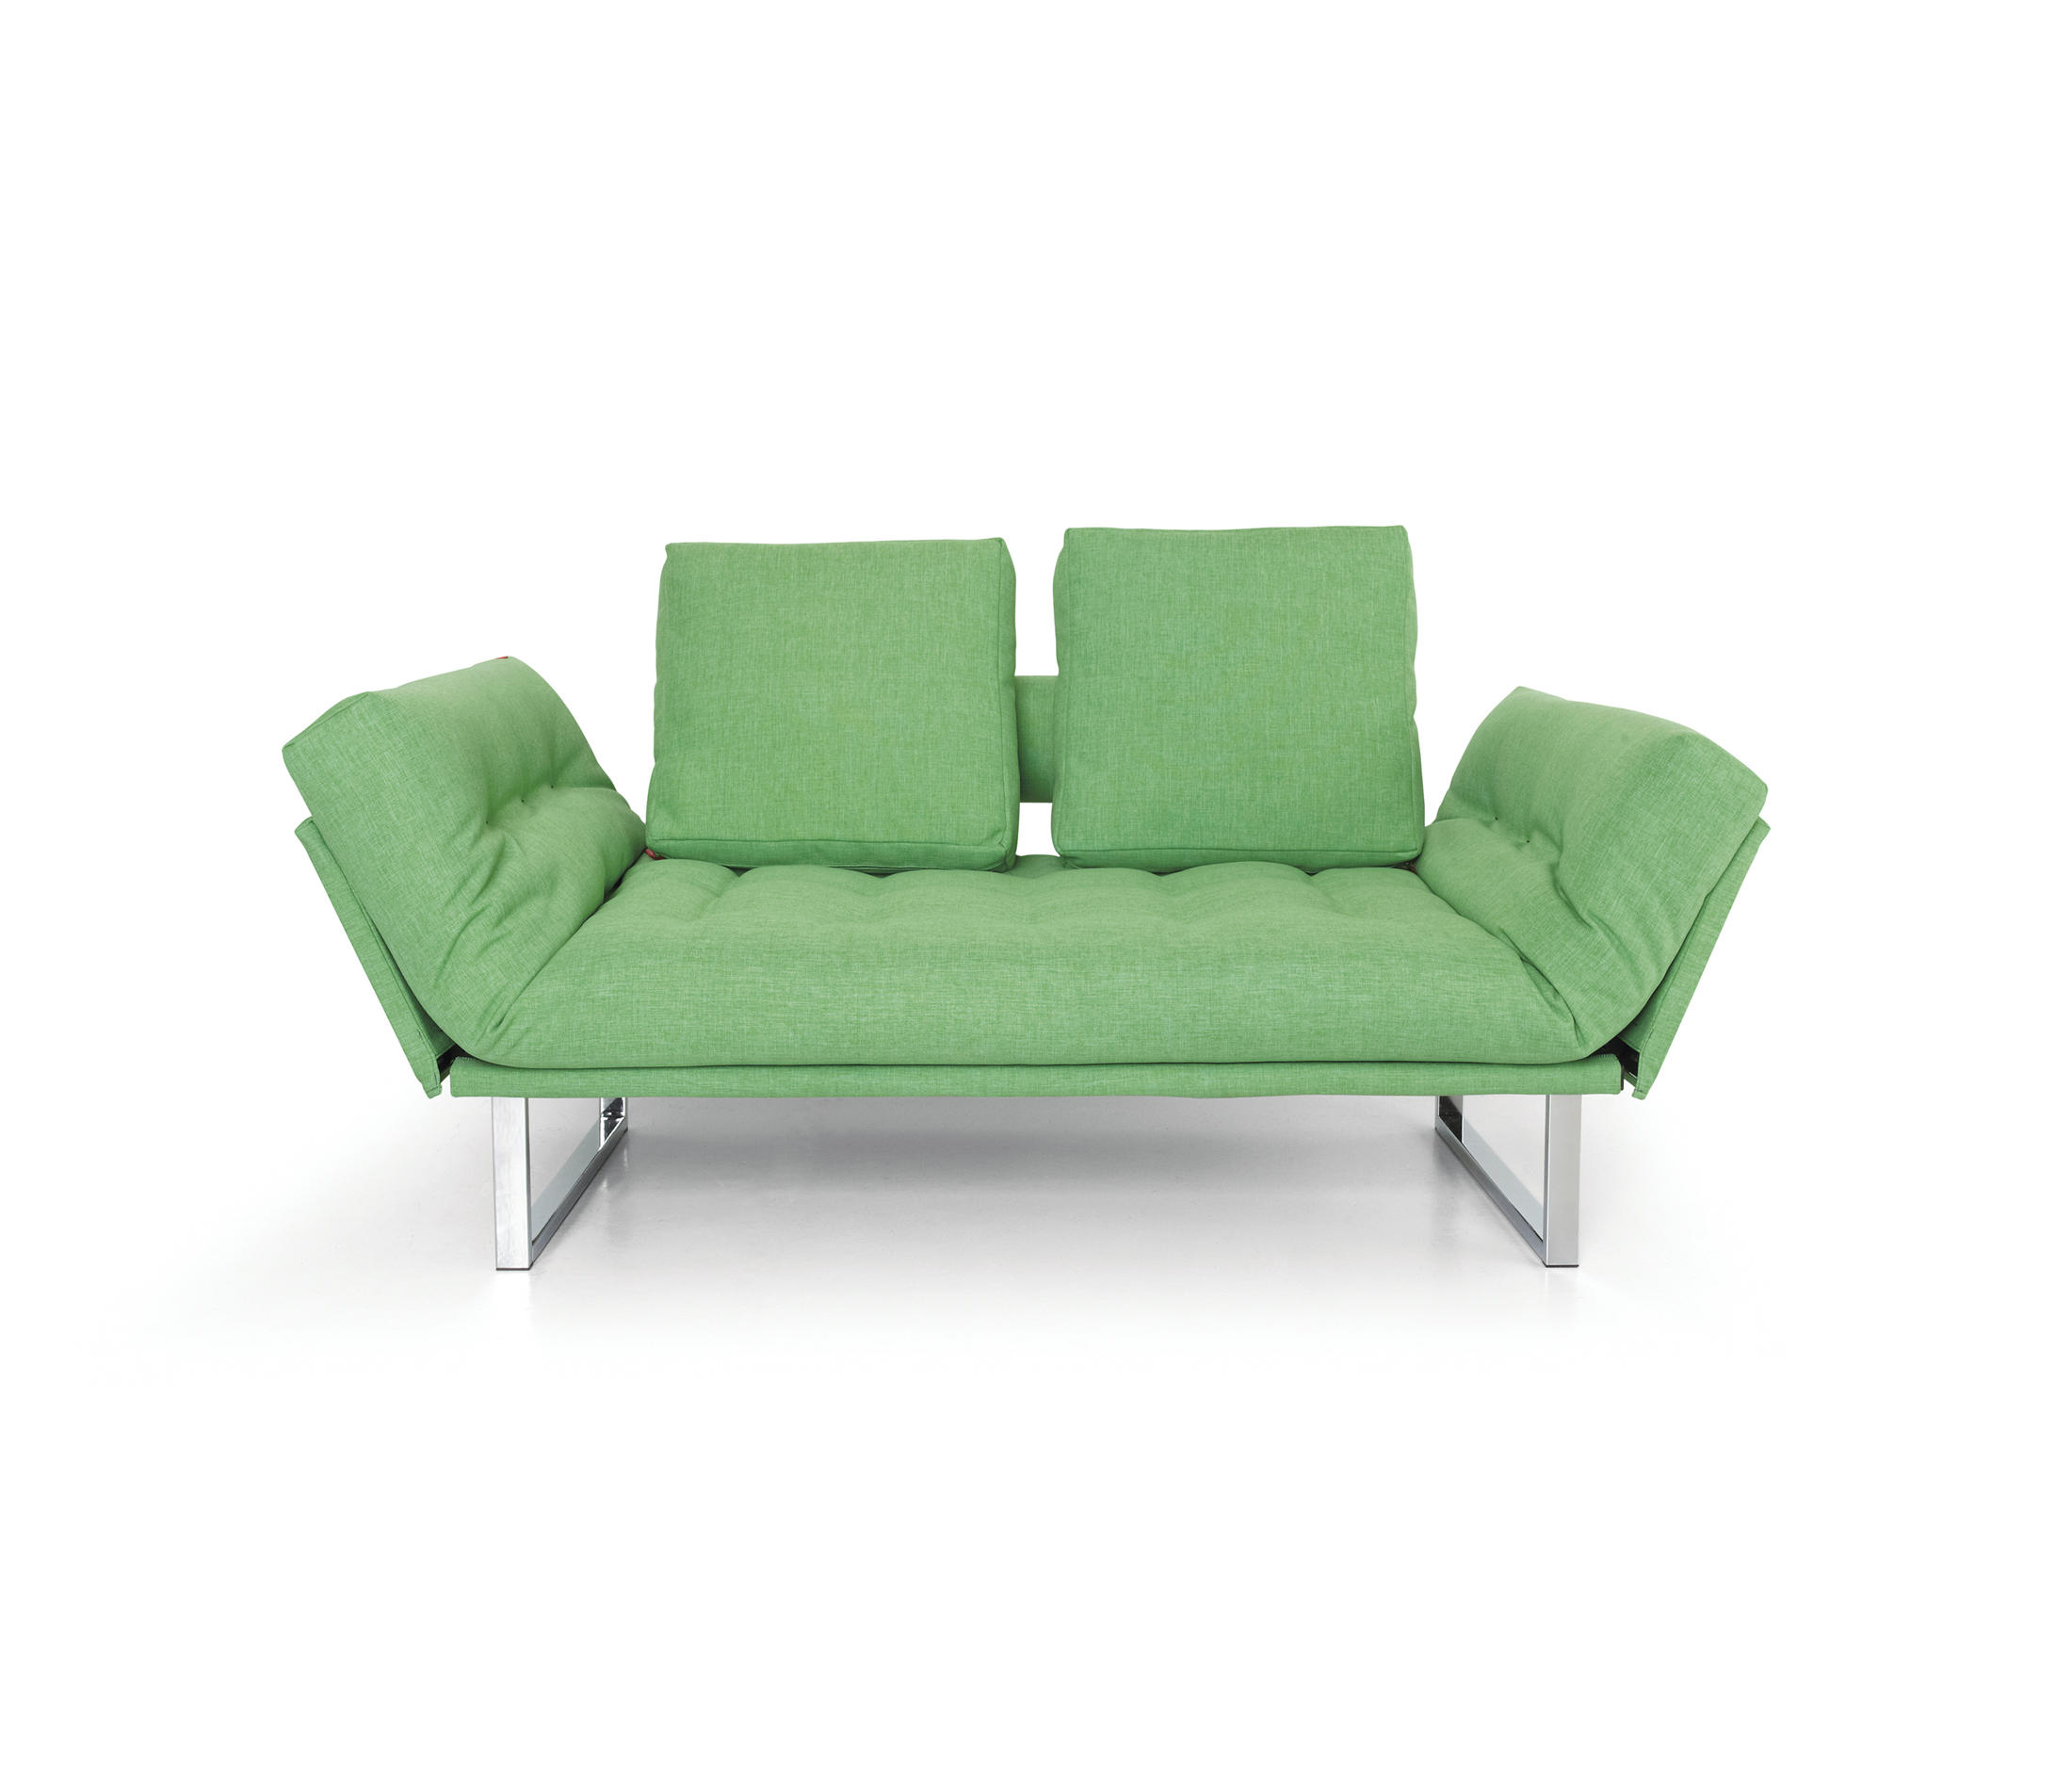 Rollo Chrome Sofas Von Innovation Randers Architonic